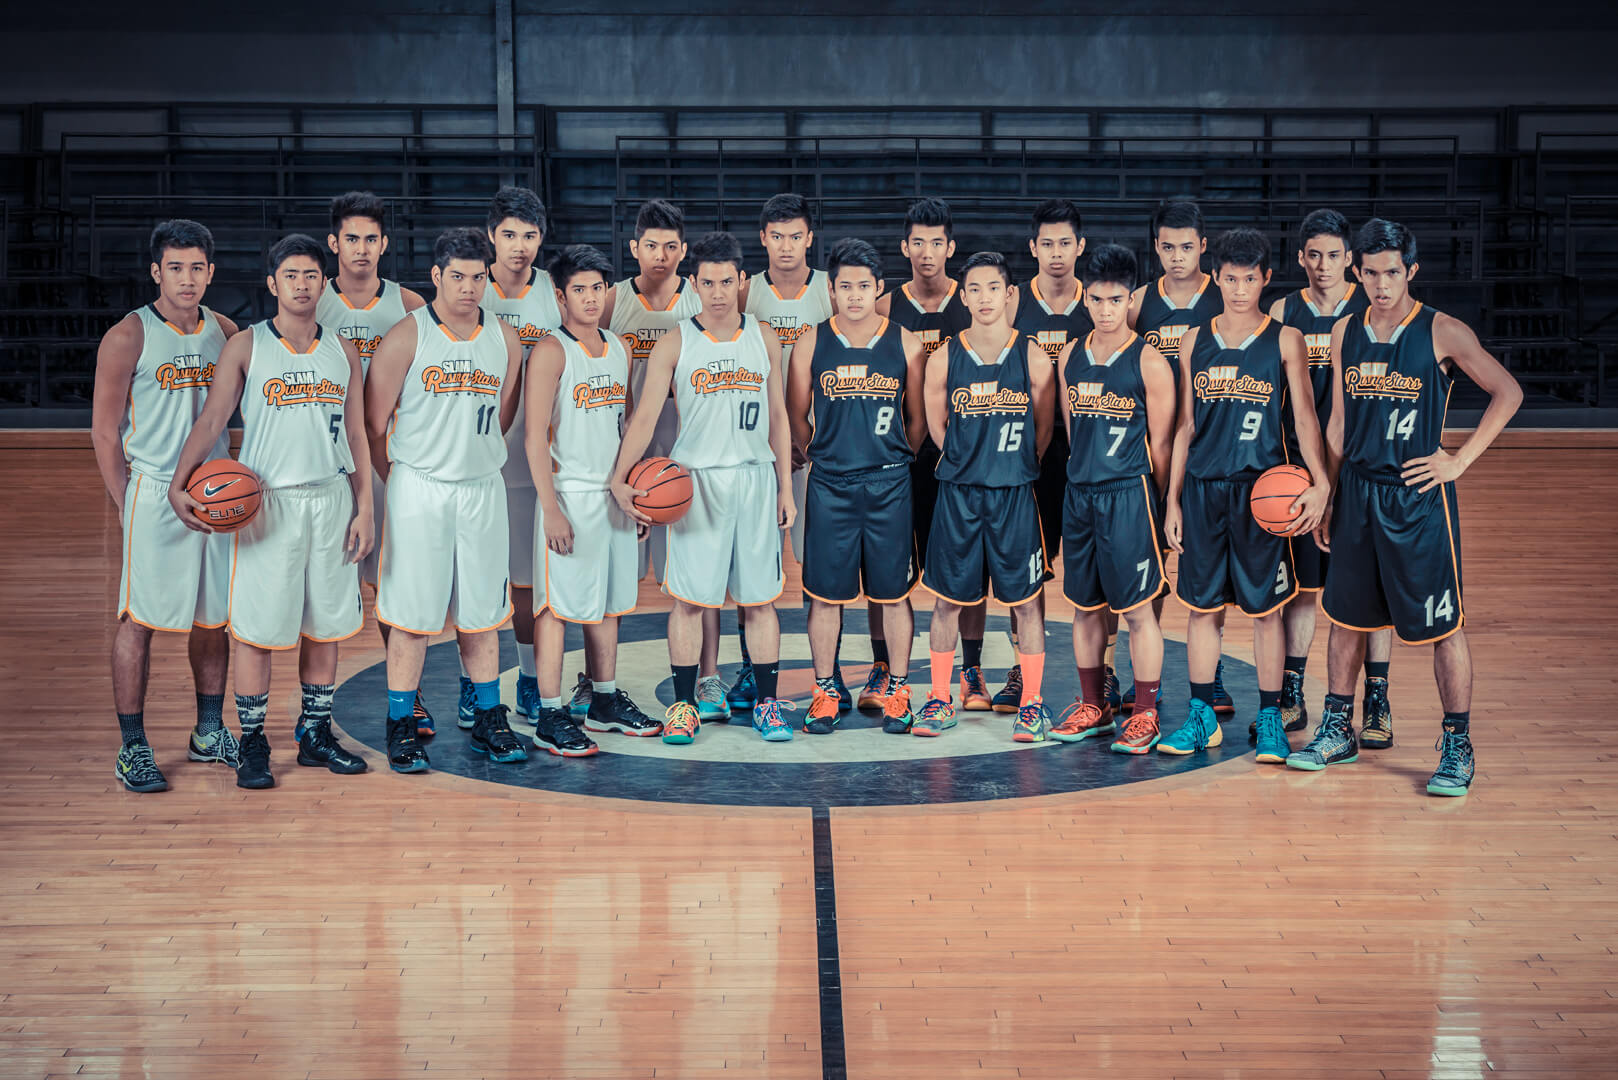 0c73c213ac93 SLAM PH gathered Metro Manila s best high school ballers for a skills  showcase. But this wasn t just any all-star game. This felt more intense.